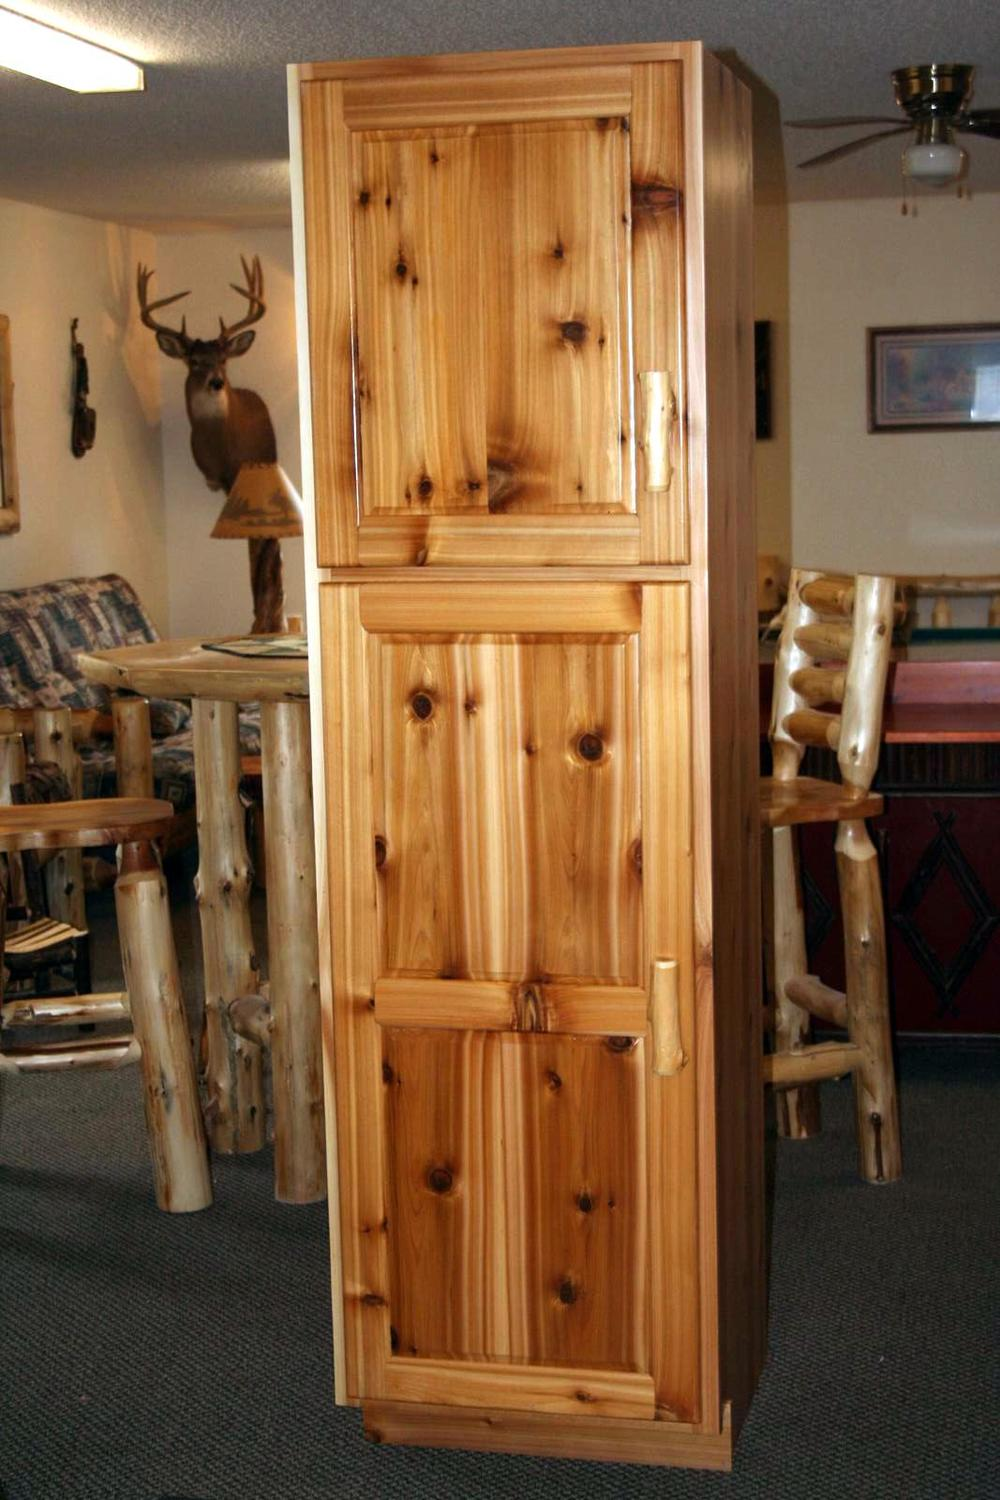 Rustic Cedar Linen Cabinet Barn Wood Furniture Rustic